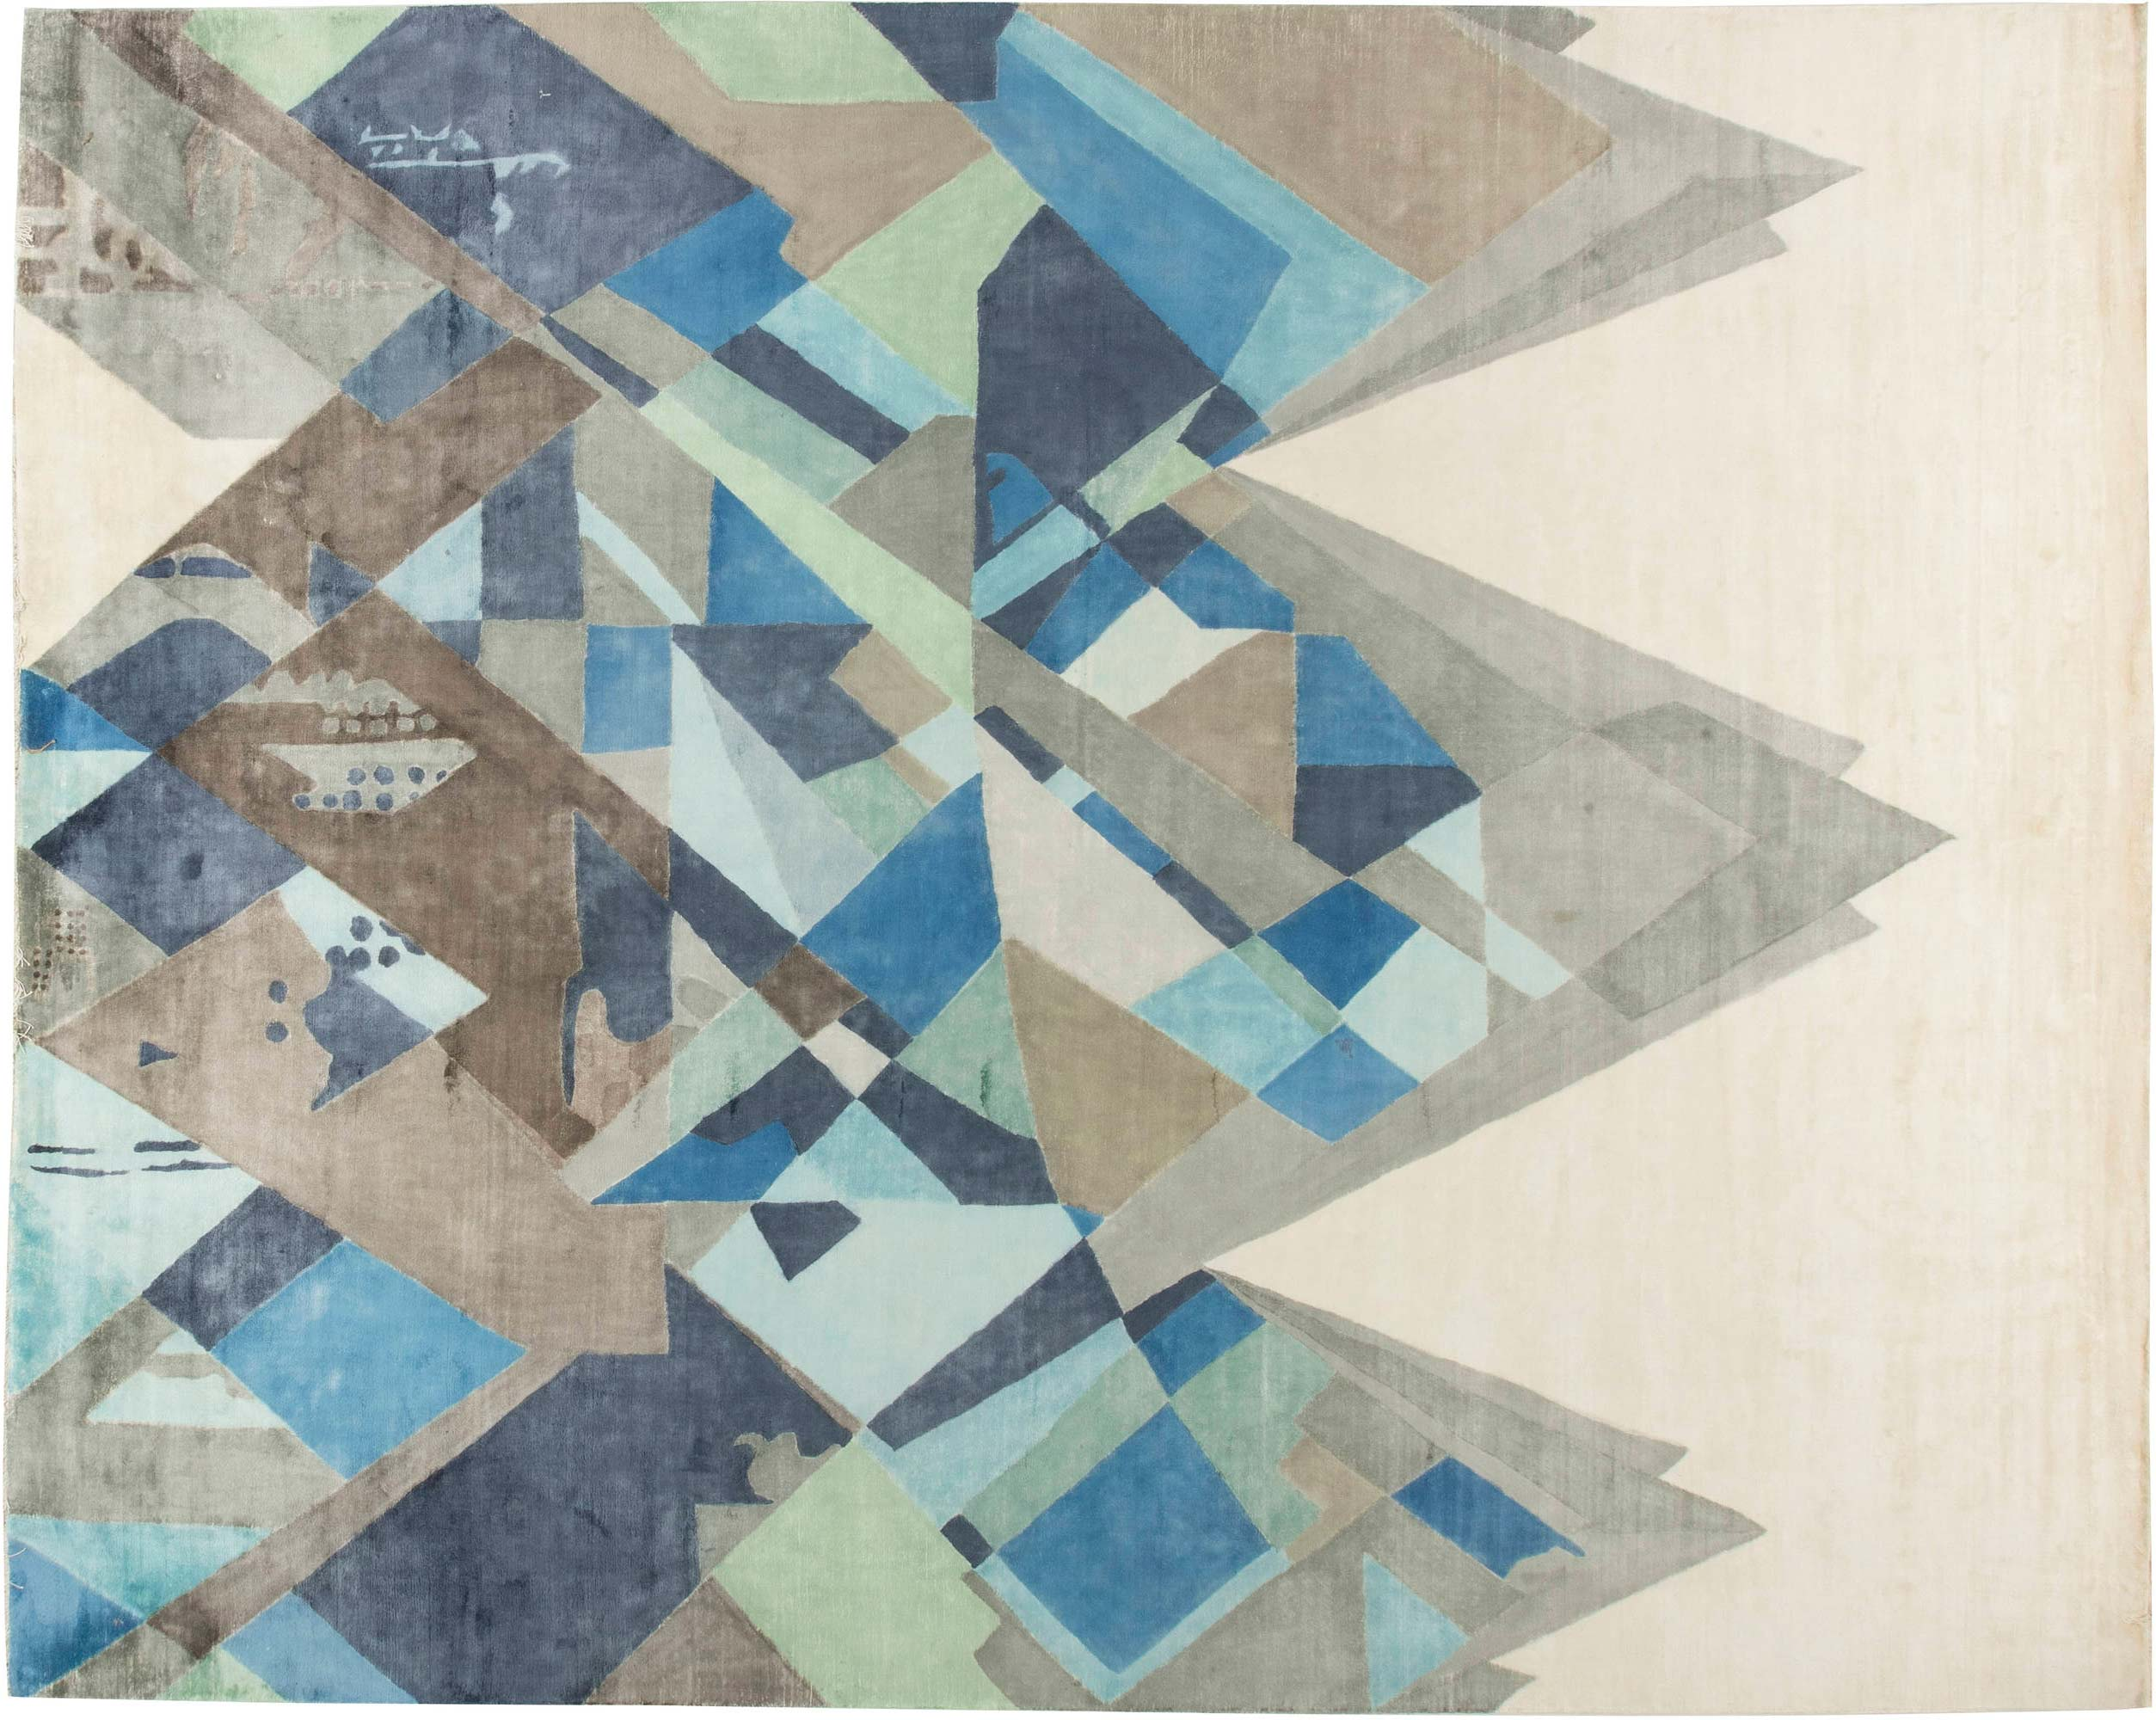 Contemporary White Beige Blue And Gray Everest Rug I N11683 By Dlb